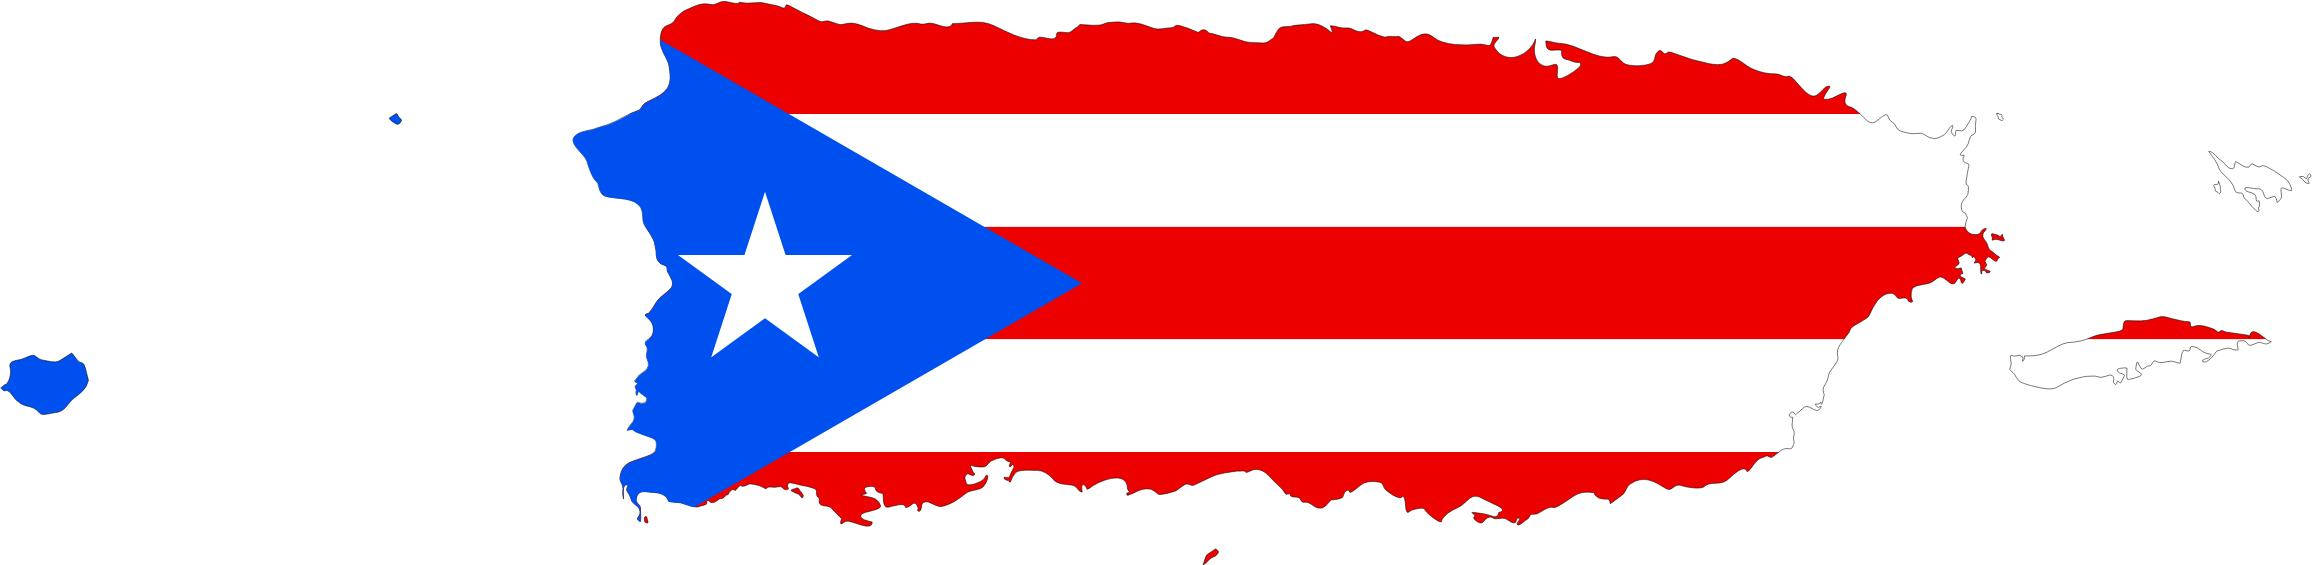 puerto rico map silhouette at getdrawings com free for personal rh getdrawings com free clipart of puerto rican flag